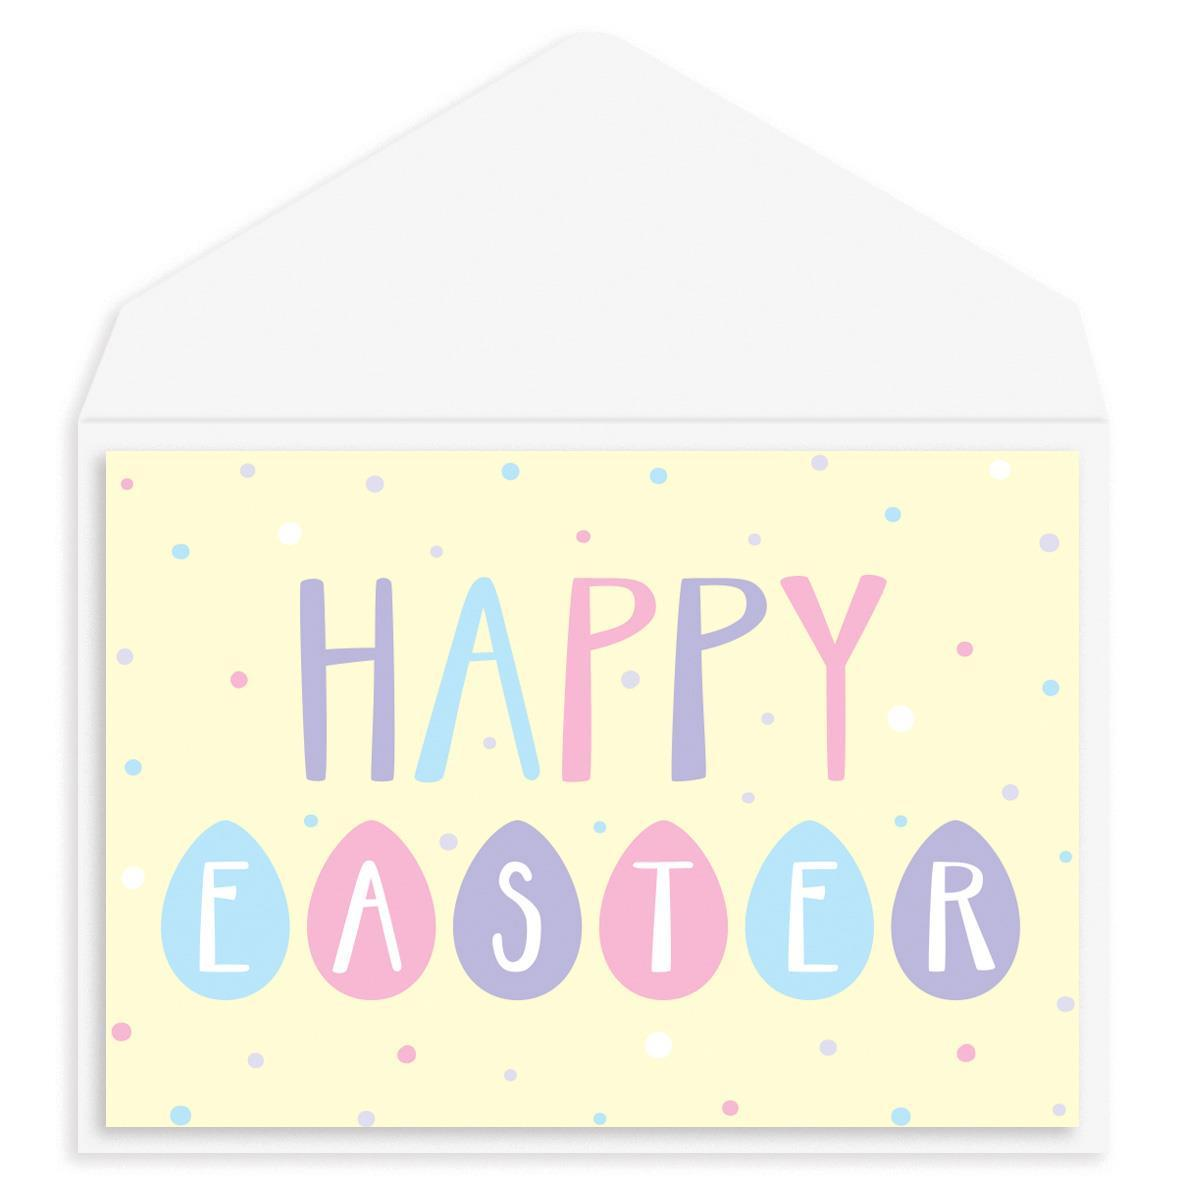 Happy Easter Eggs Easter Card